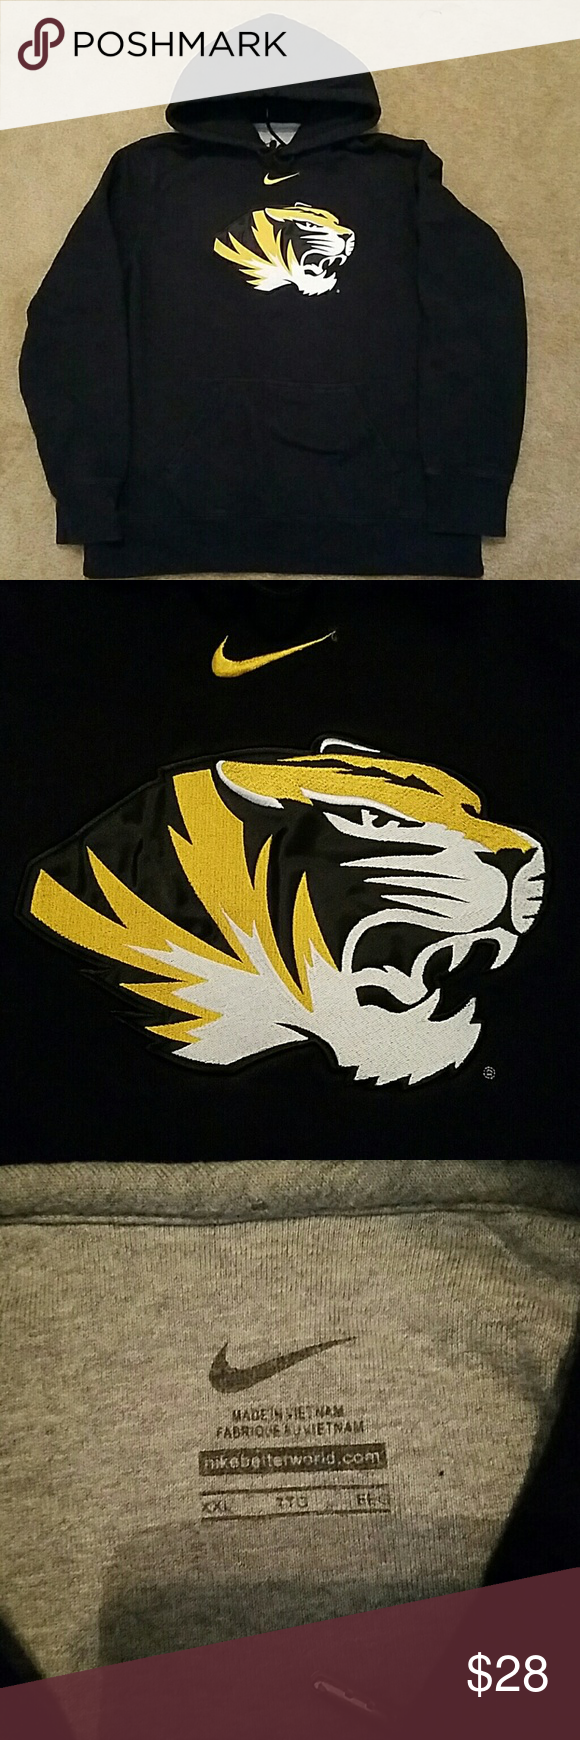 NIKE Missouri Tigers  Hooded Sweatshirt Excellent condition, tag size says XXL fits like a unisex XL. One front pocket. Nothing on the back. Nike Tops Sweatshirts & Hoodies